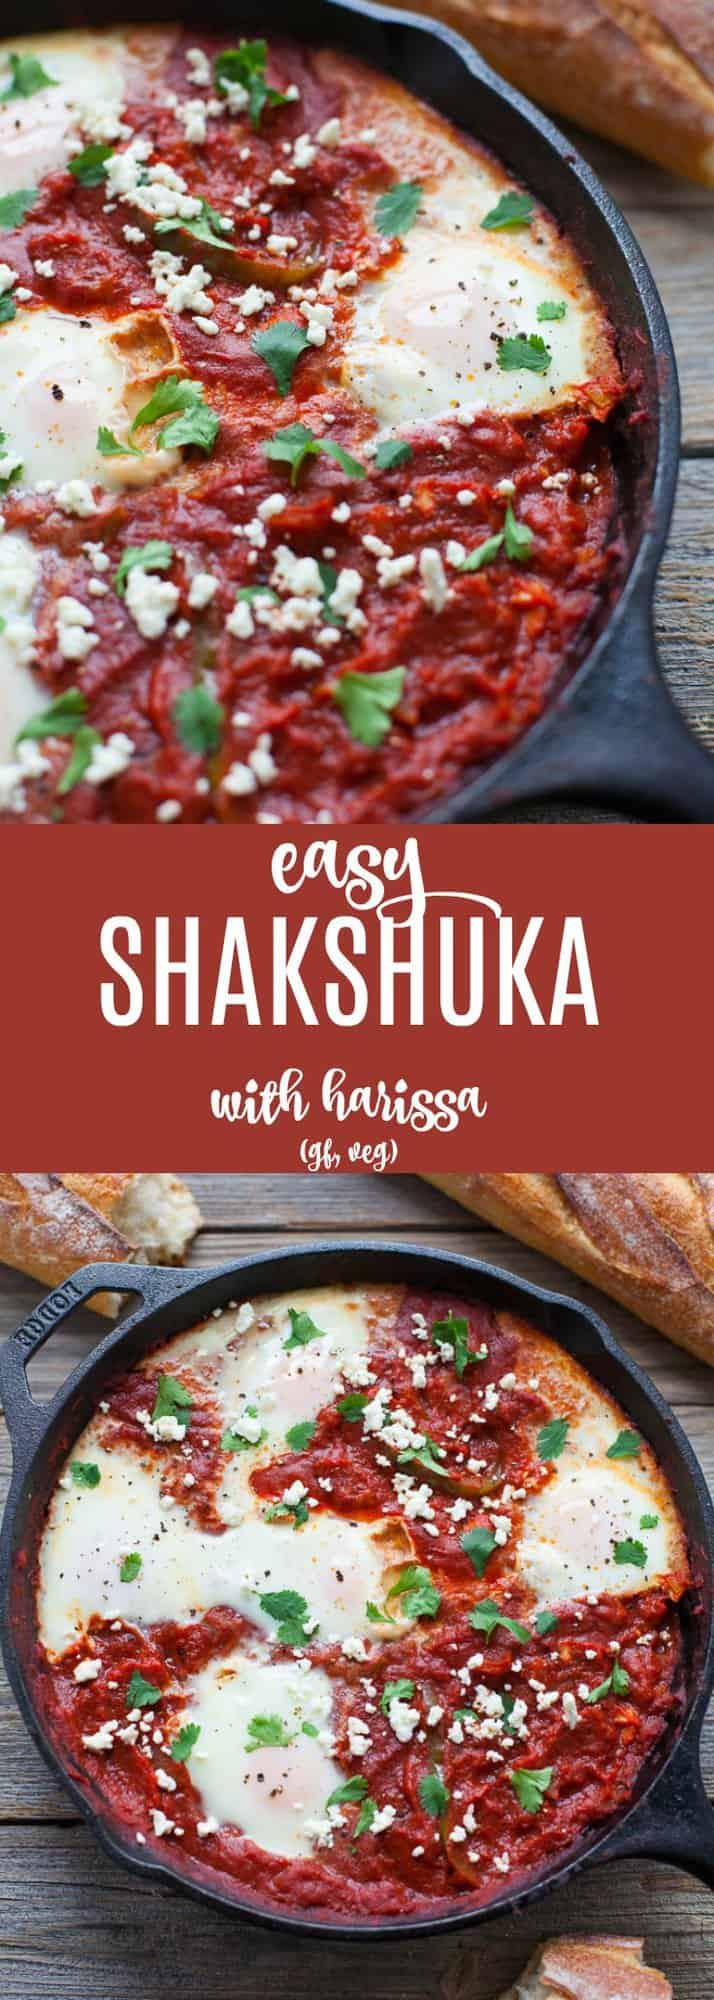 A traditional Middle Eastern dish with a North African twist, this easy shakshuka with harissa (eggs baked in a spicy tomato stew) is a delicious savory dish to put on your Sunday brunch menu!